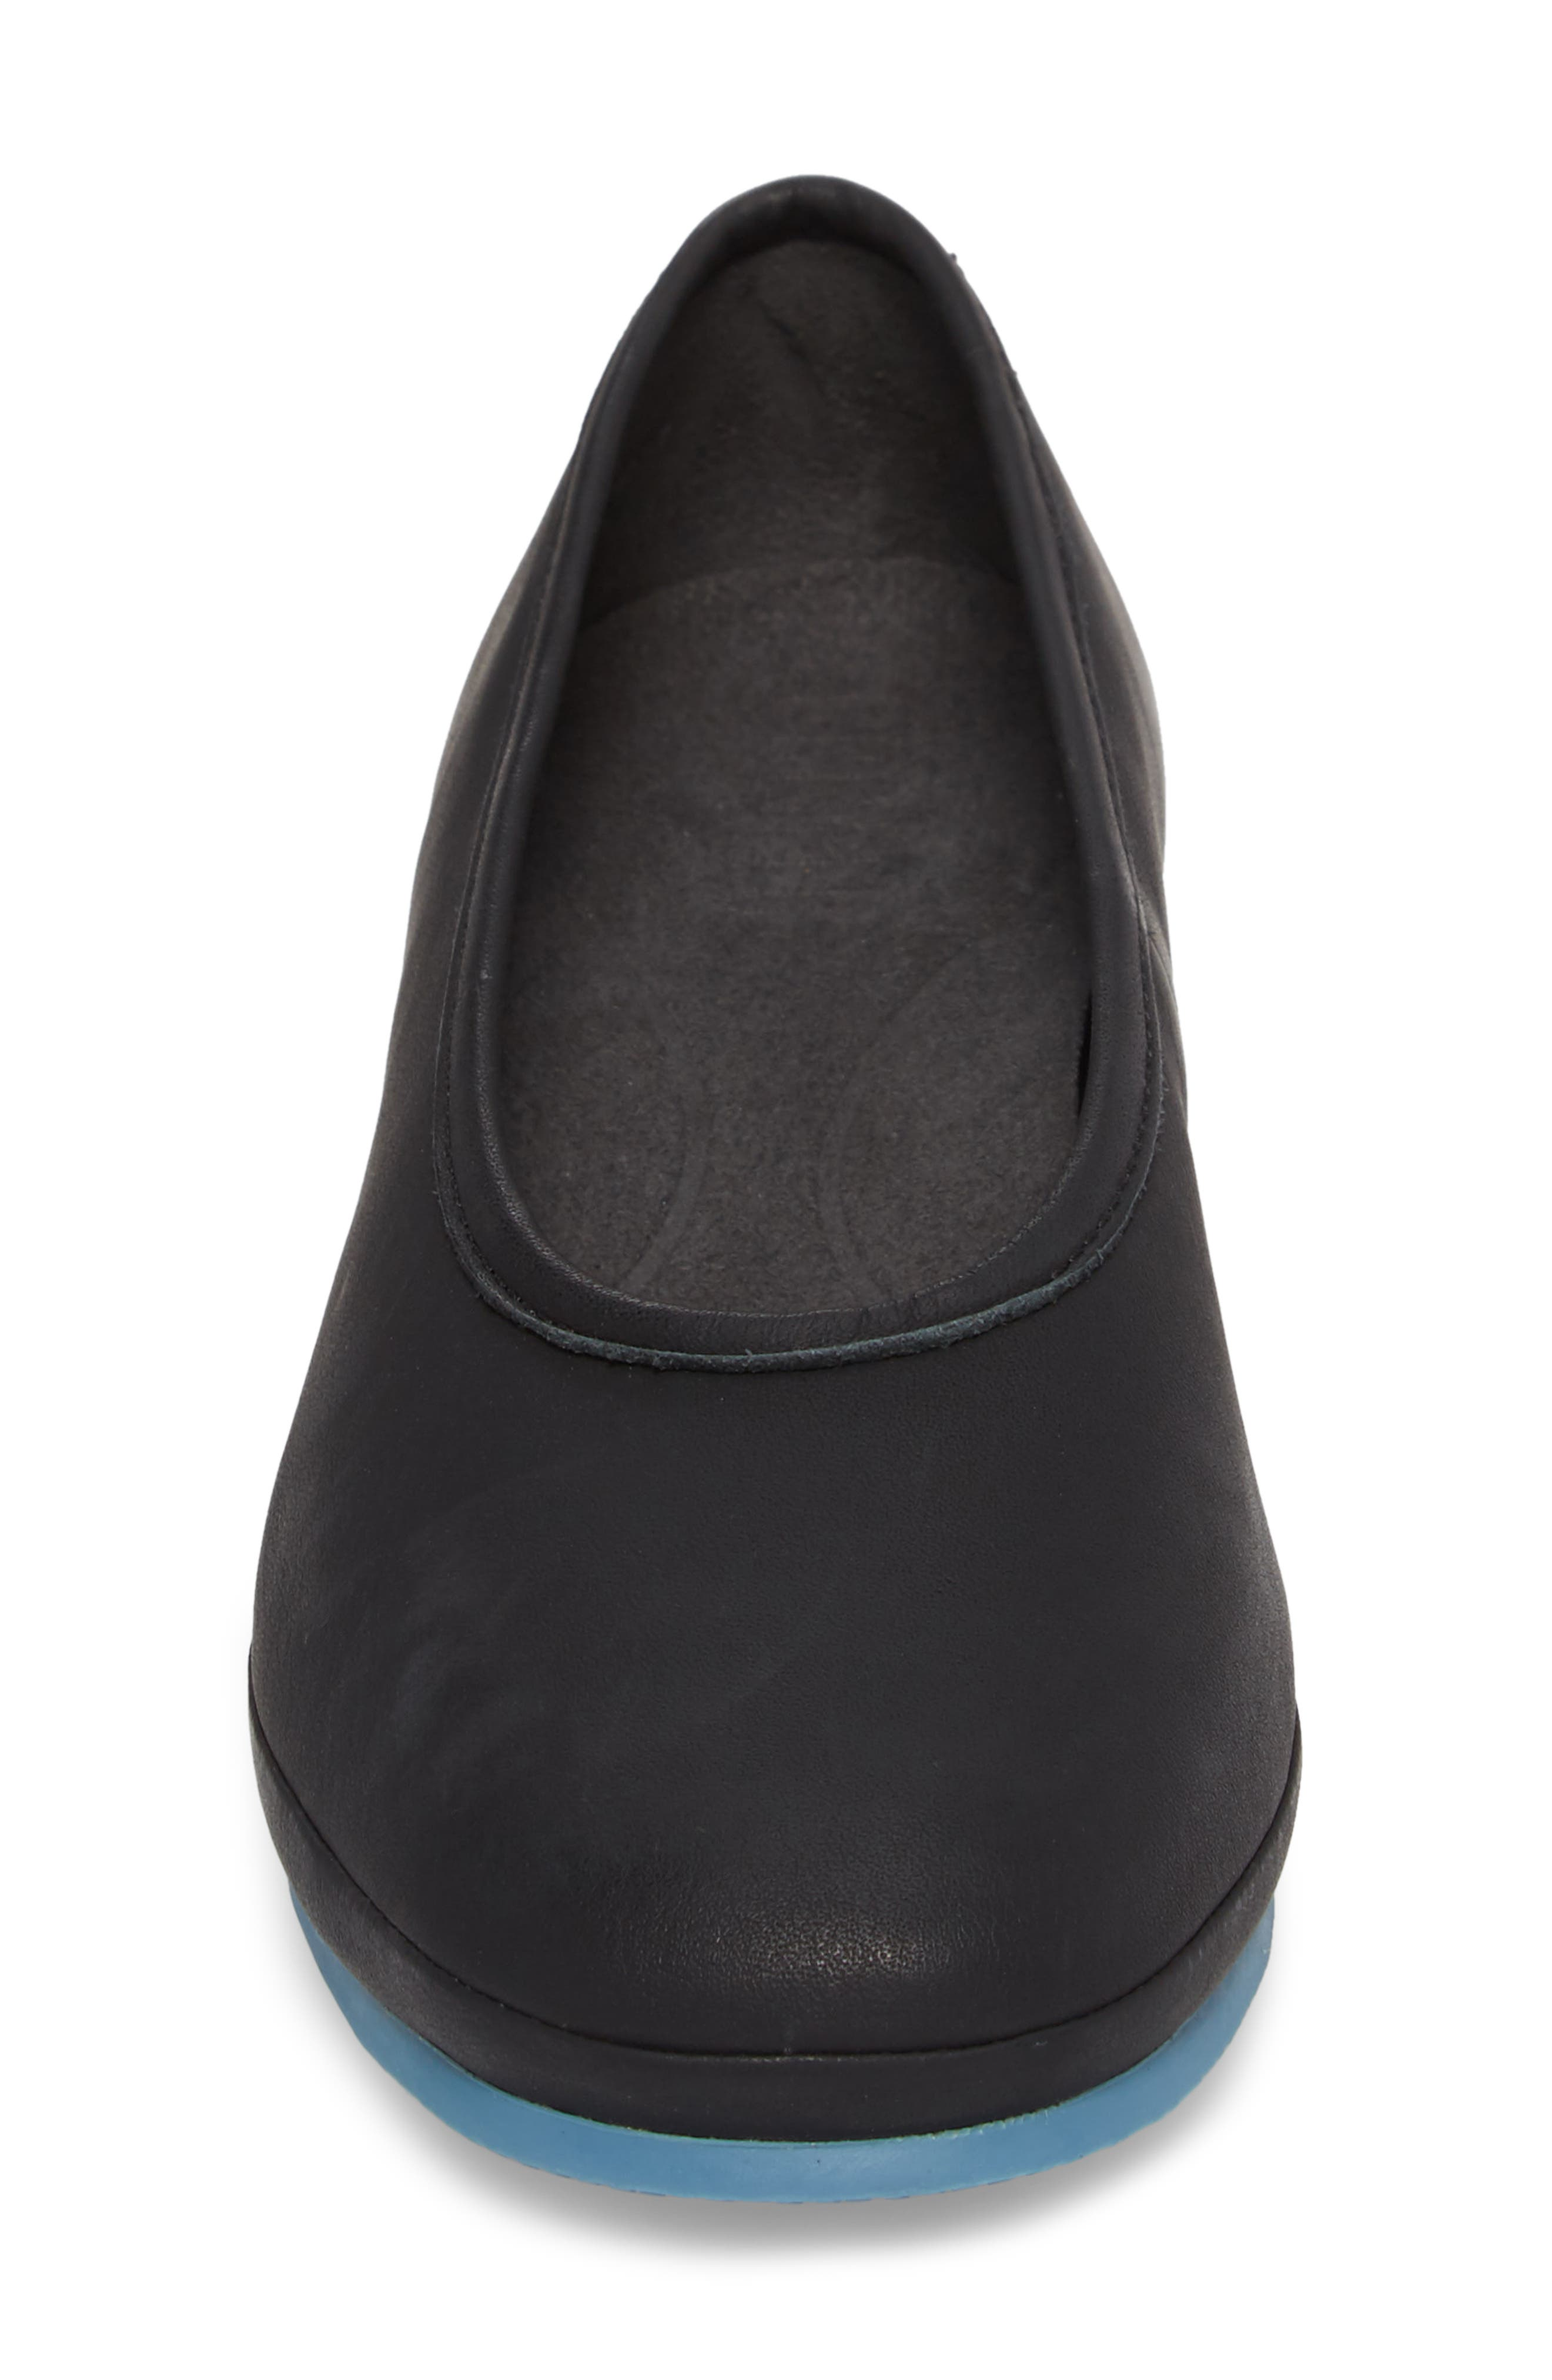 Alright Cone Heel Pump,                             Alternate thumbnail 4, color,                             Black Leather